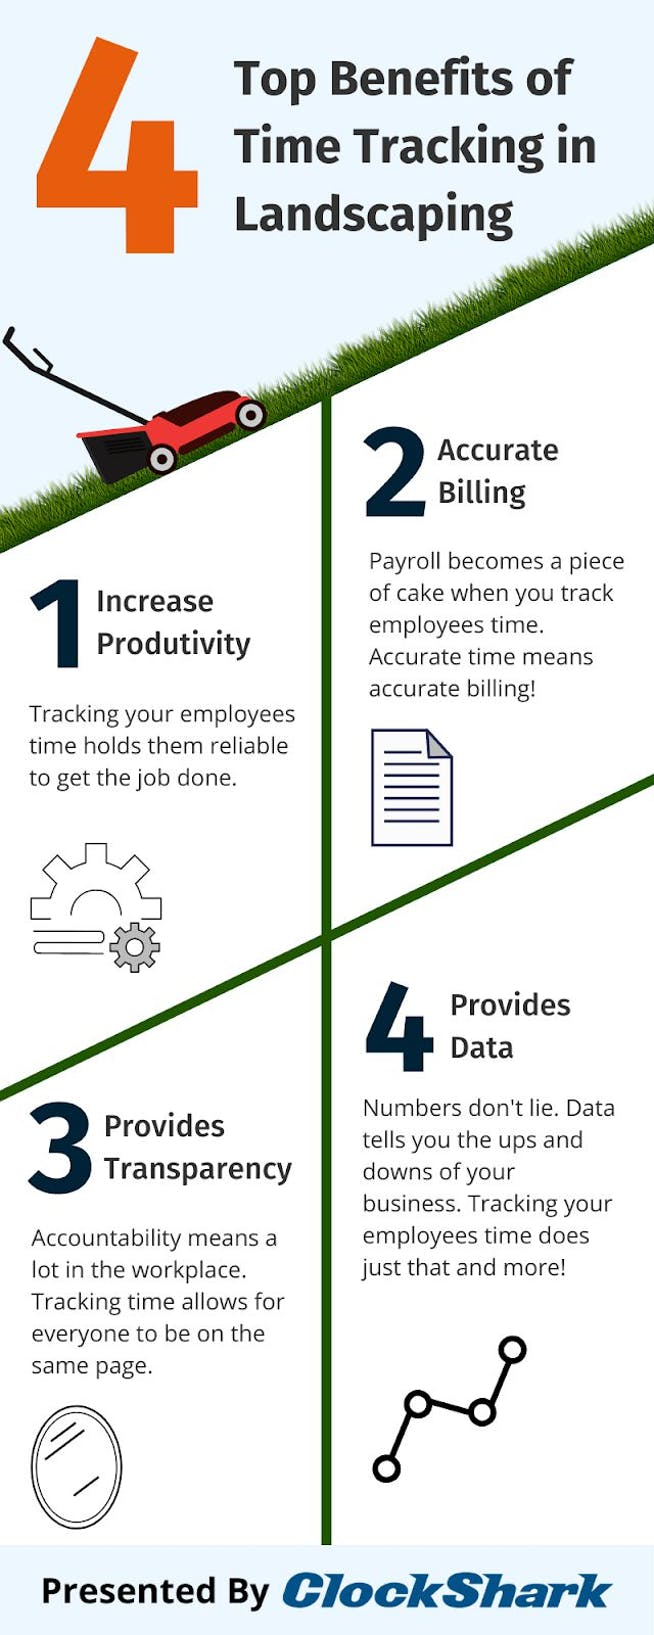 Time Tracking for Landscaping